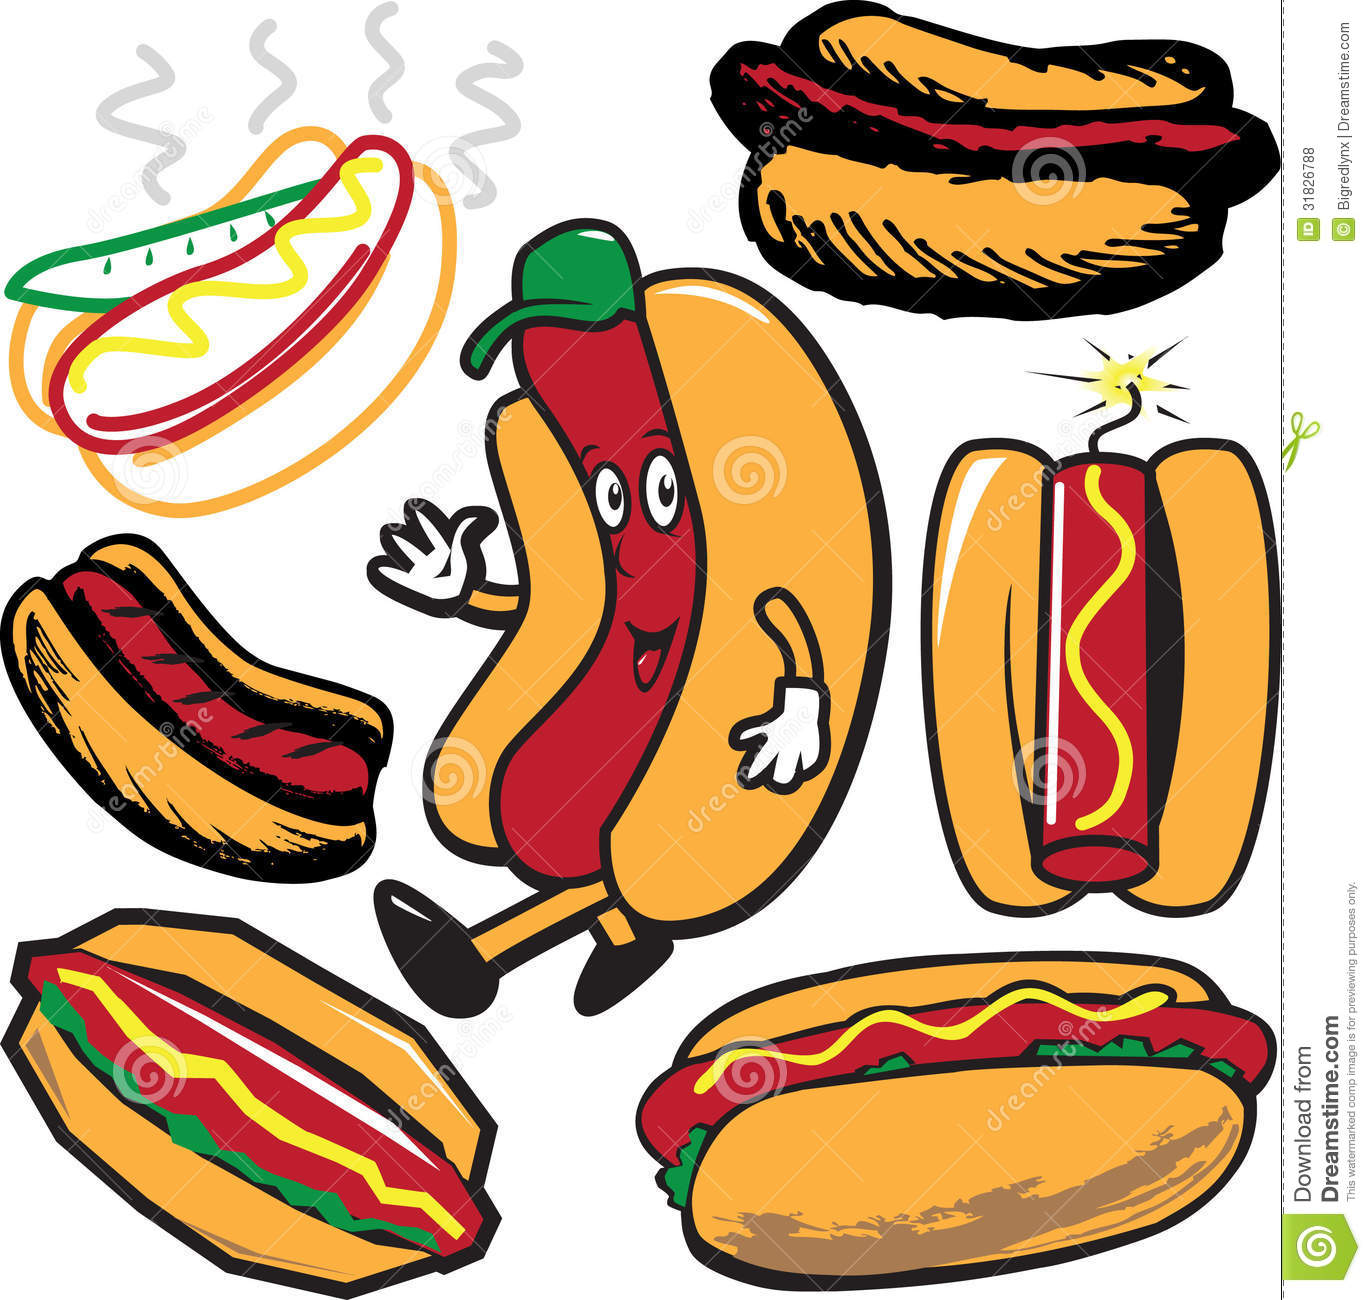 hight resolution of clip art collection of hot dog symbols and icons